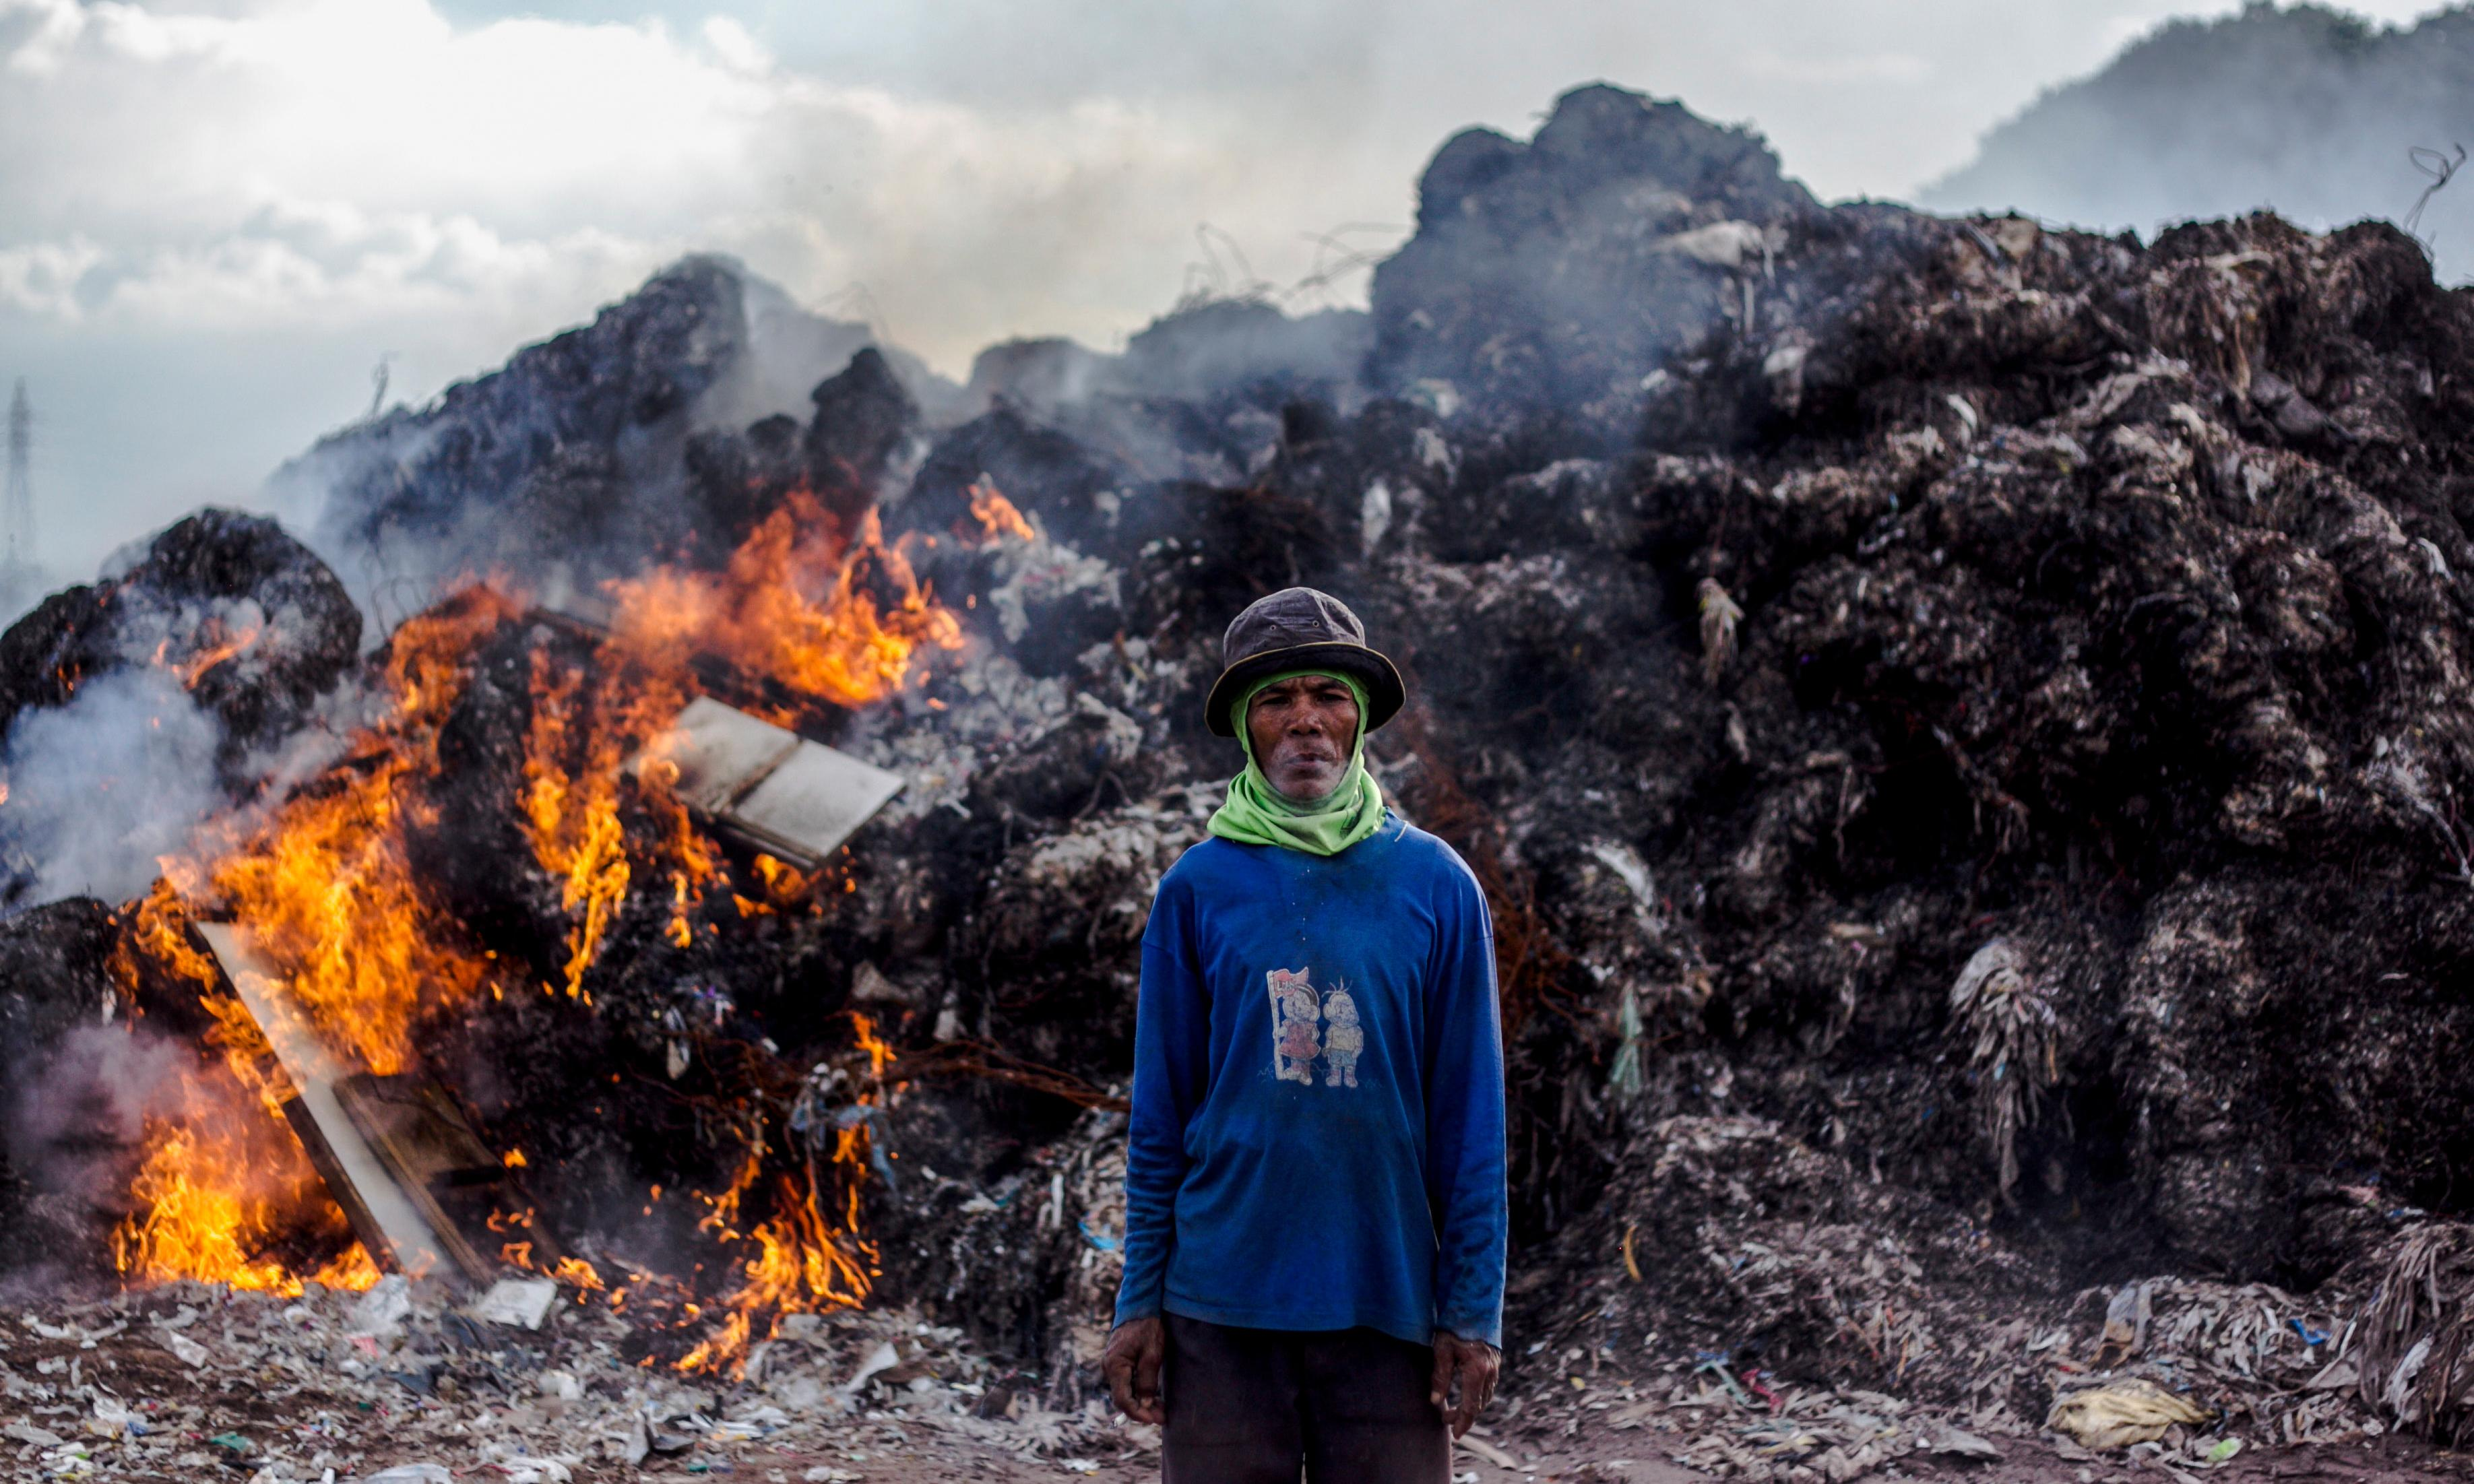 Pollutionwatch: soot study shows harm from open waste burning